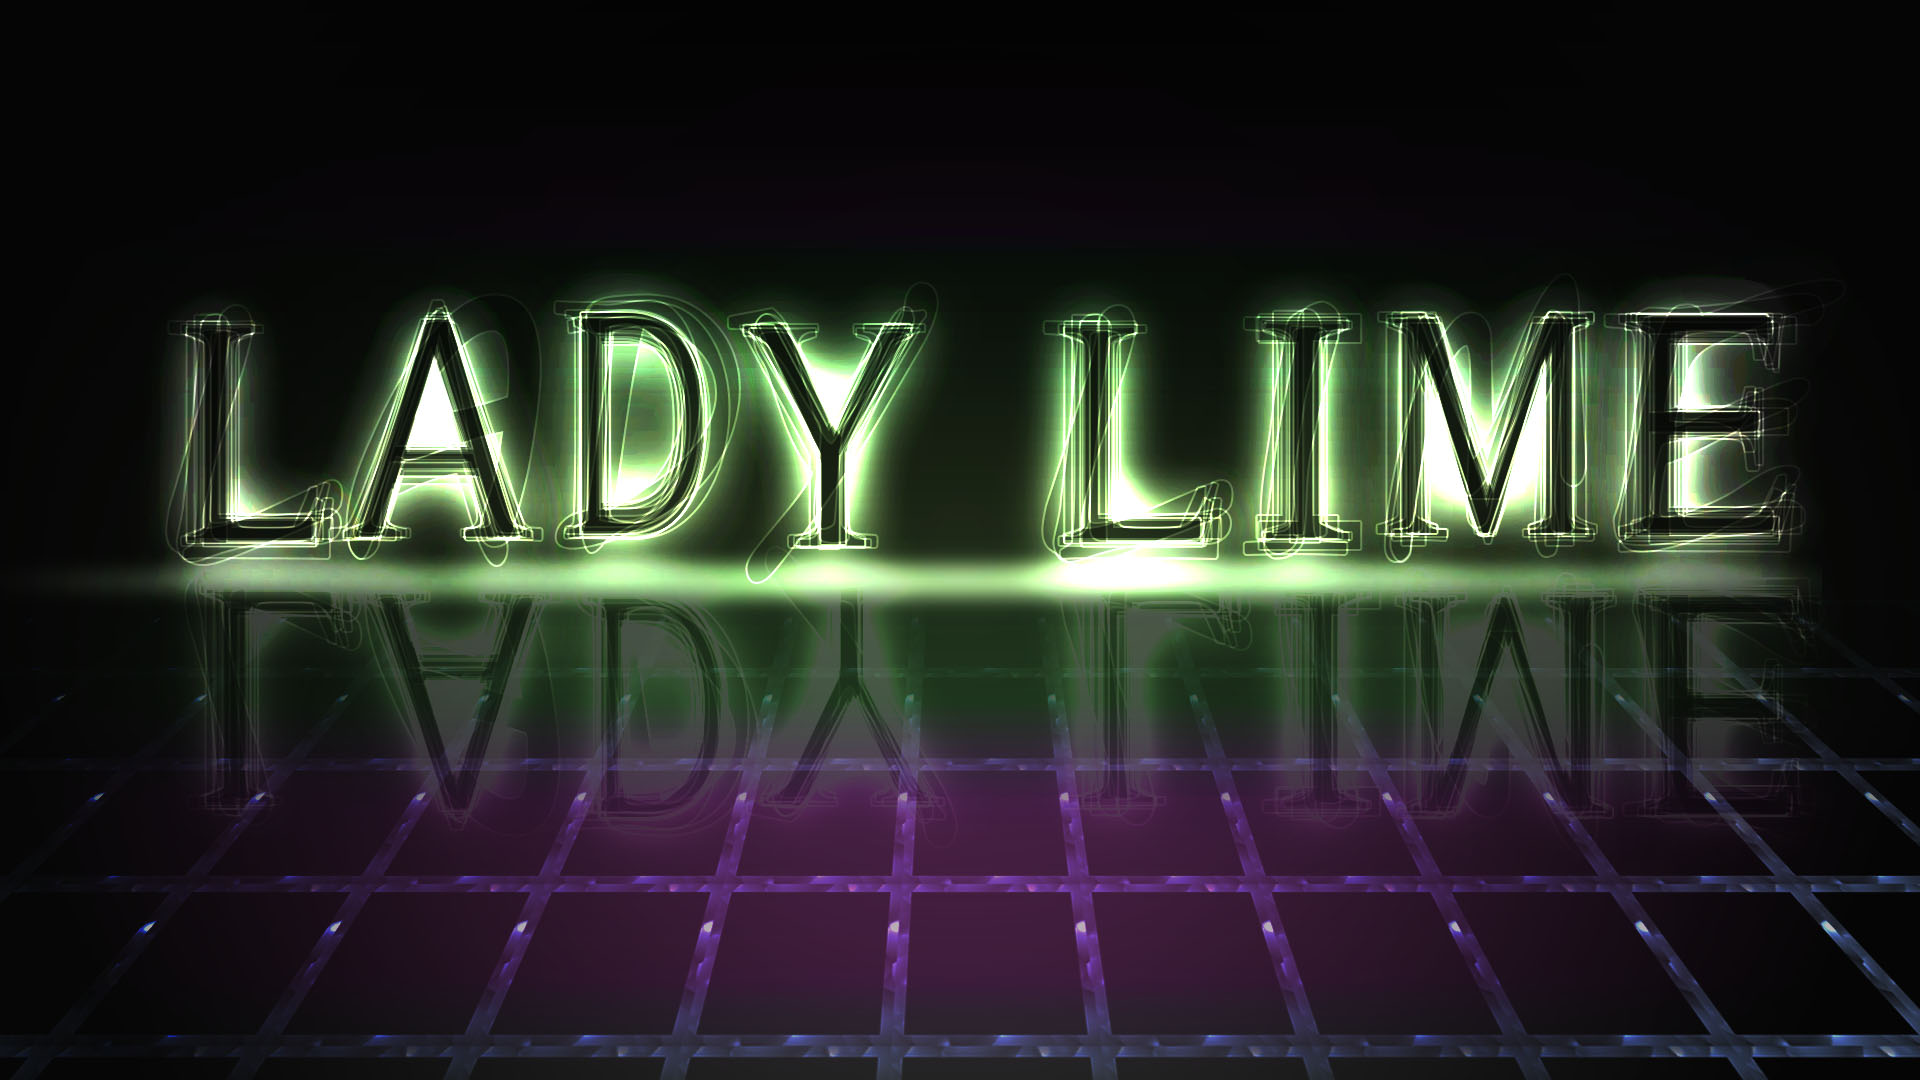 Lady Lime